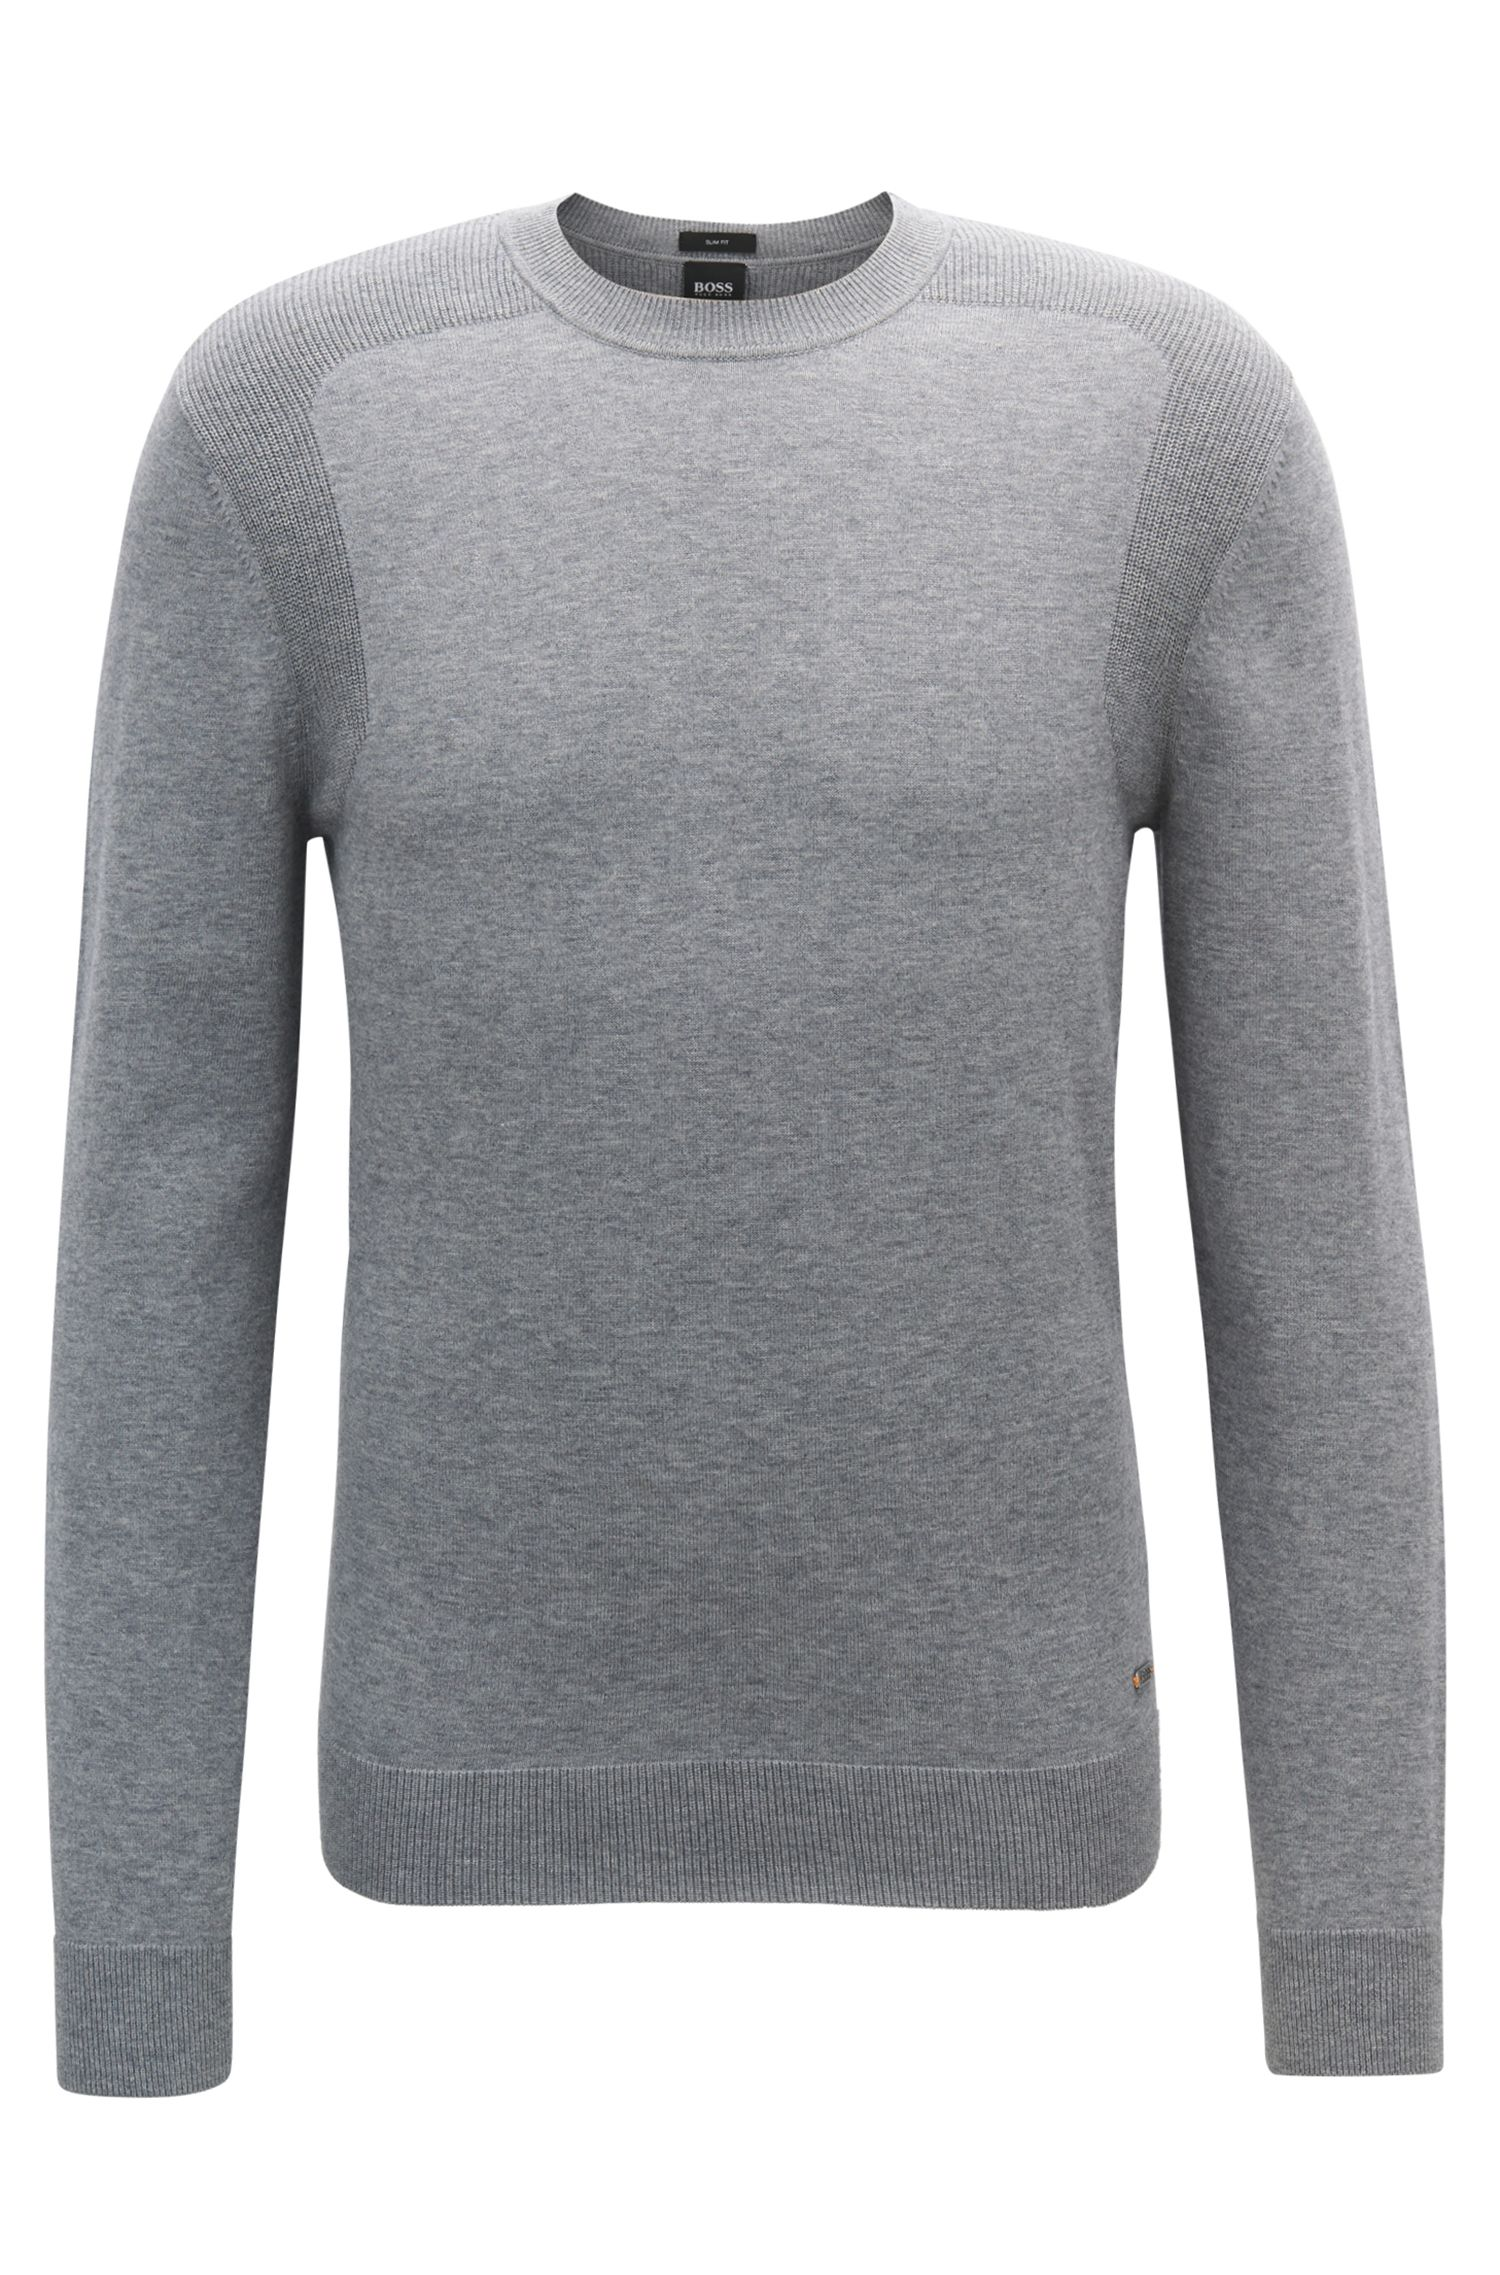 Cotton-blend sweater with contrast shoulder panels